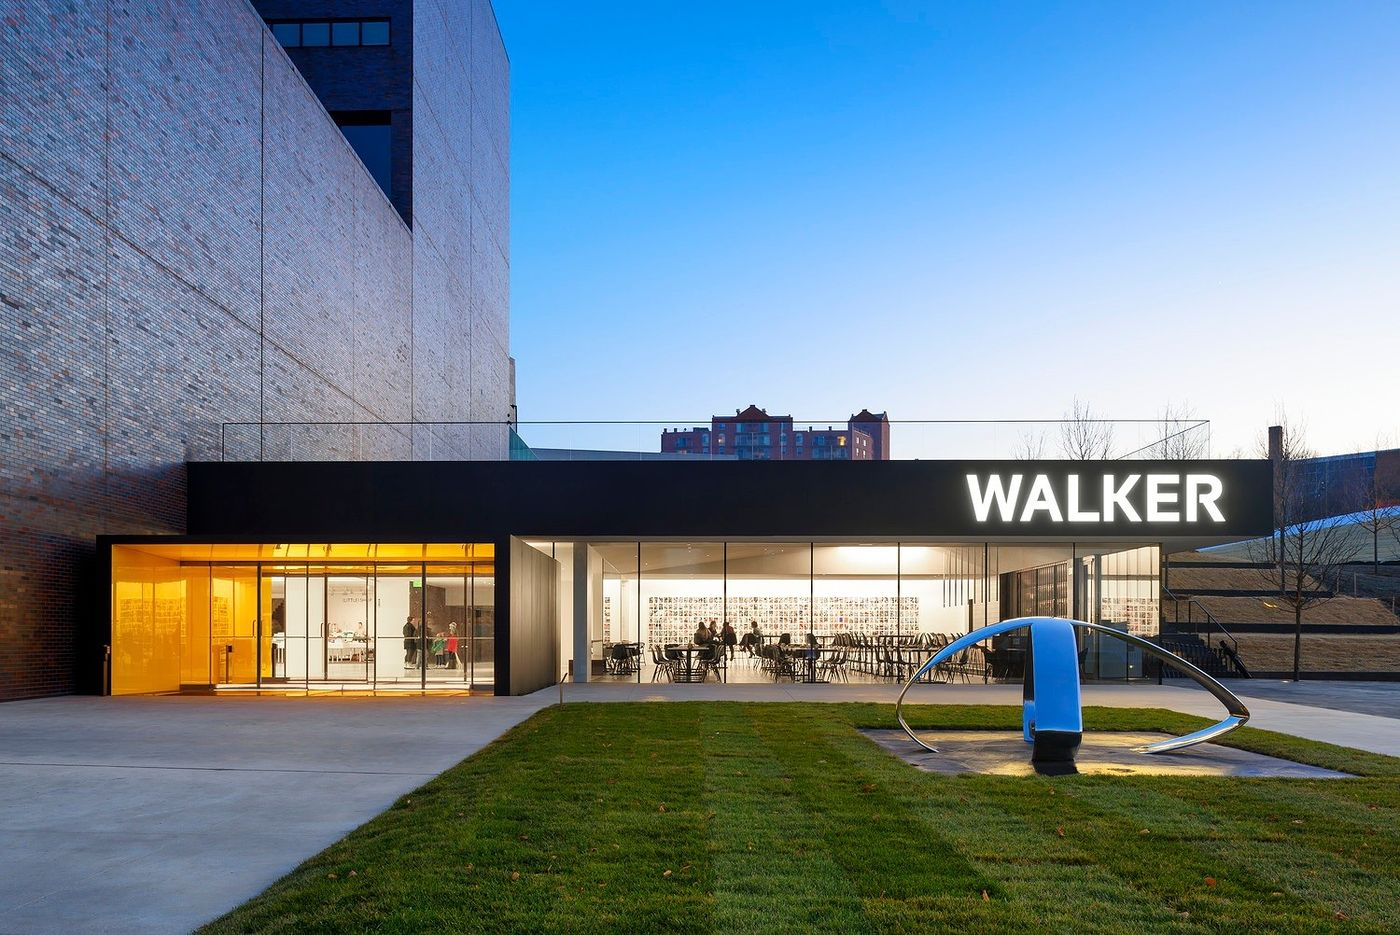 For the eighth consecutive year, Phillips supports Avant Garden, the Walker Art Center's annual benefit, and is proud to sponsor its charitable auction featuring works by Matthew Barney, Jasper Johns, Paulina Olowska and more.